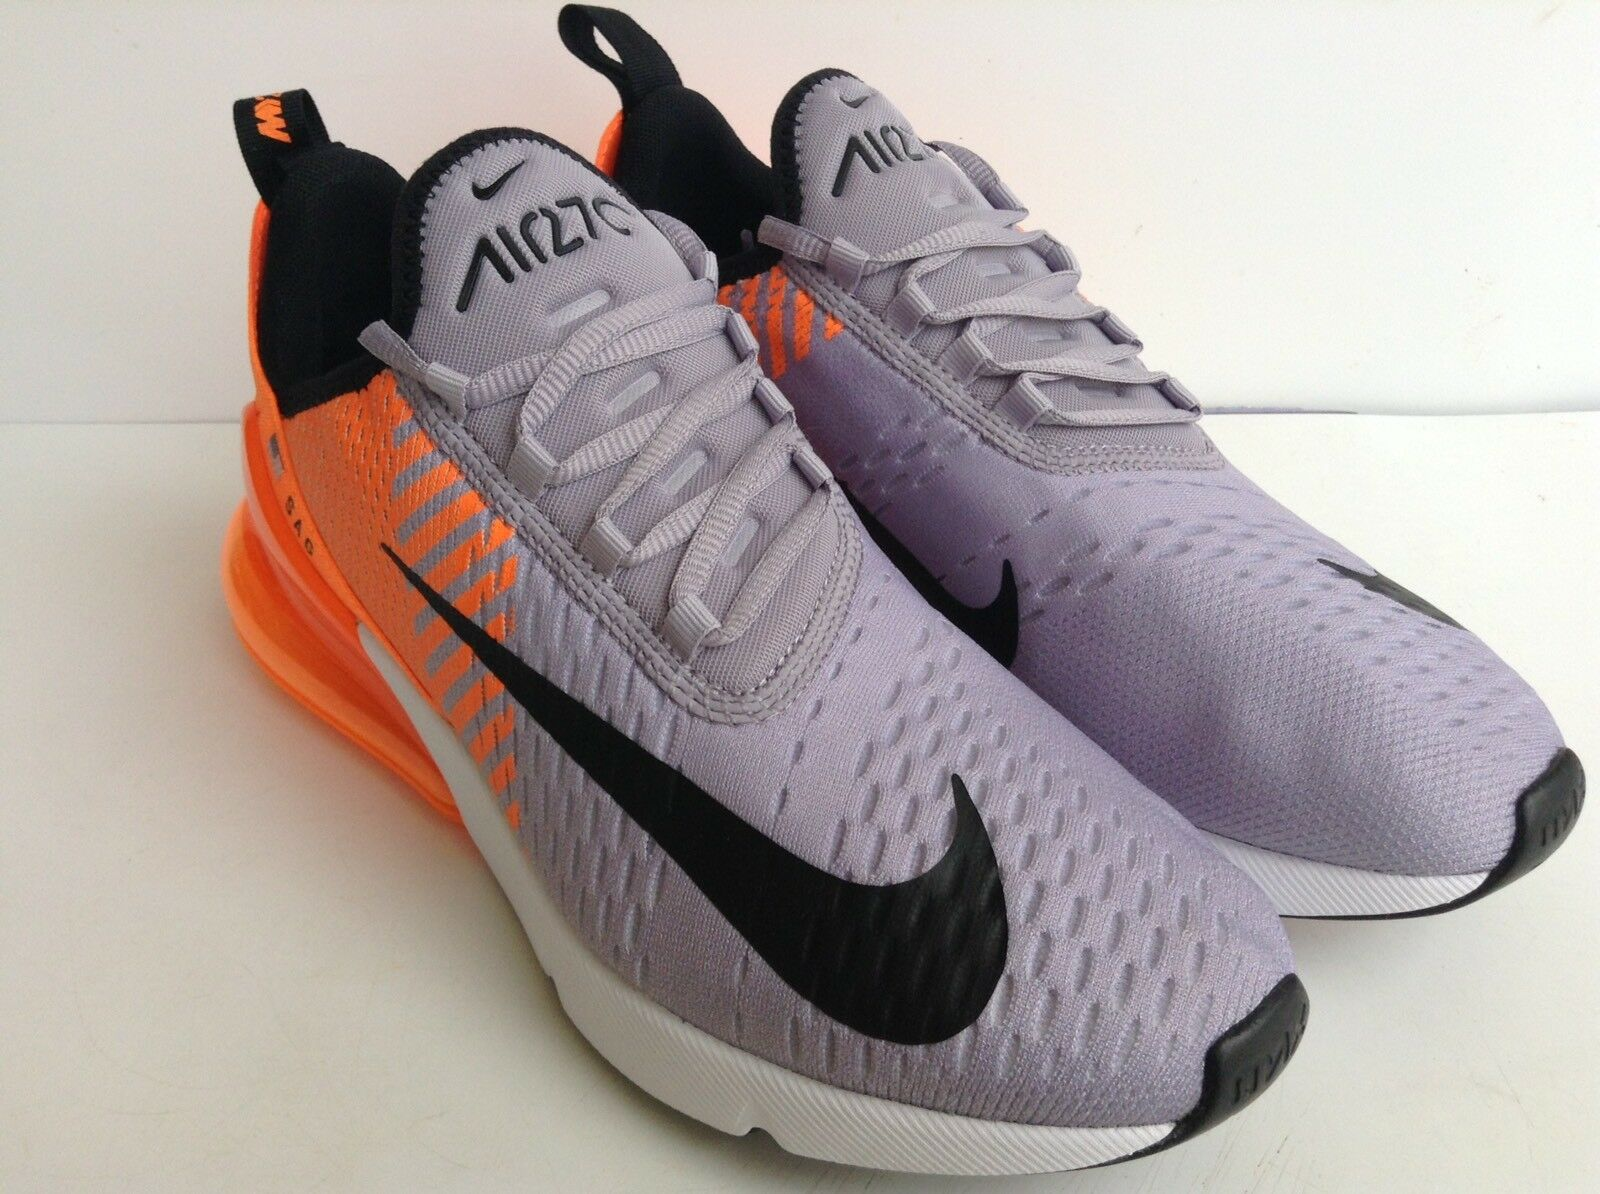 NIKE ORANGE-PURE AIR MAX 270 ID ORANGE-PURE NIKE PLATINUM- gris - Noir -blanc MNS.SZ 8.5 a49b98